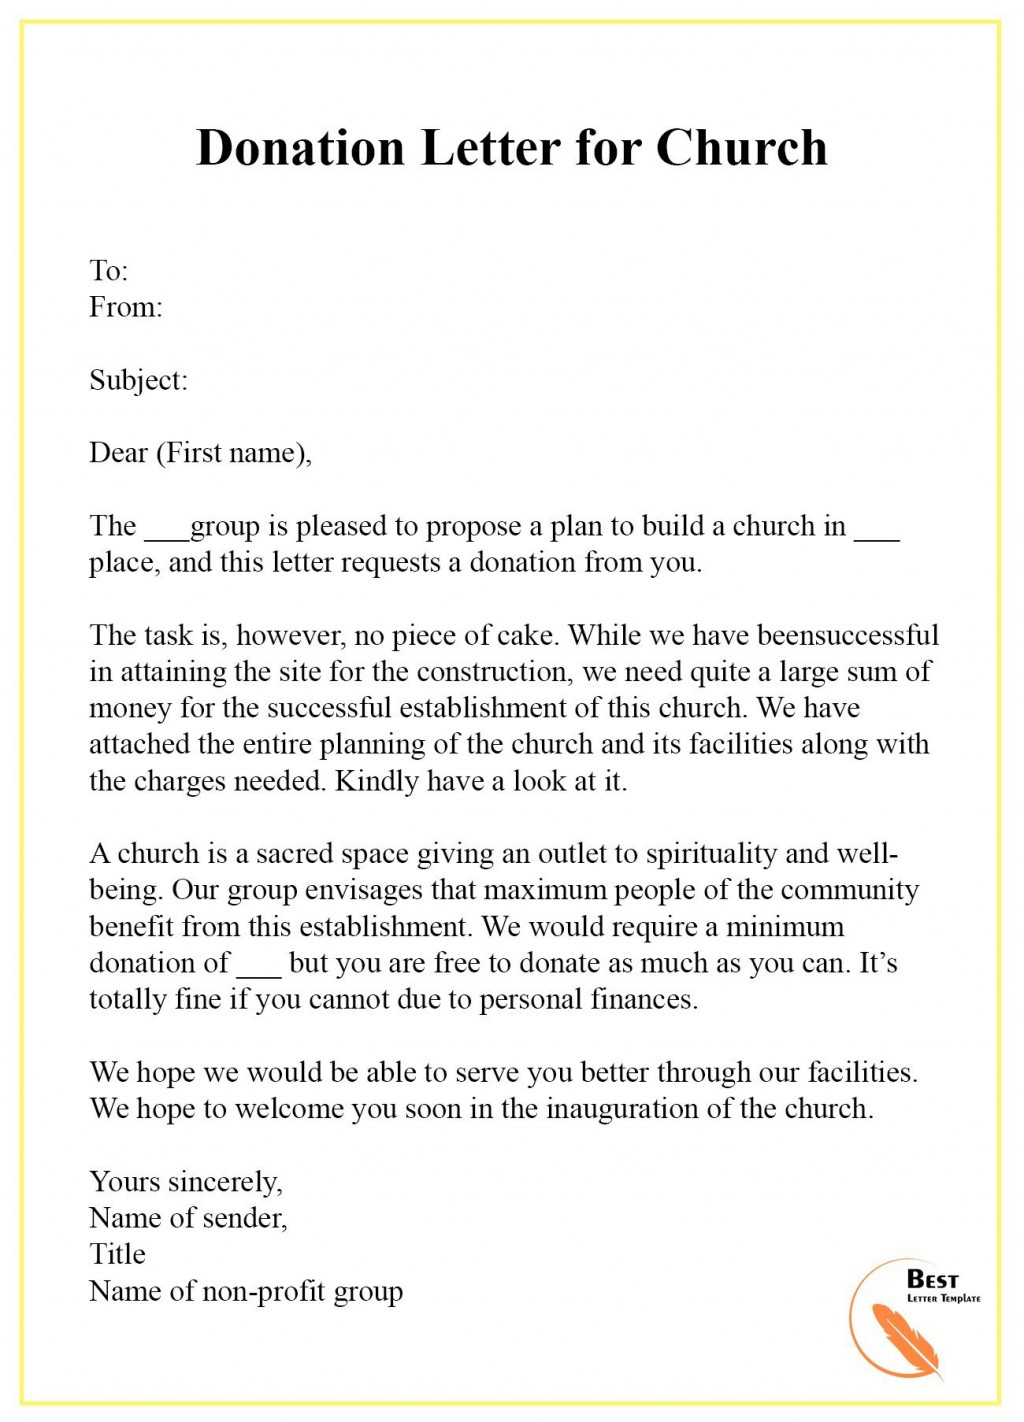 003 Amazing Fund Raising Letter Template High Definition  Templates Example Of Fundraising Appeal For Mission Trip UkLarge